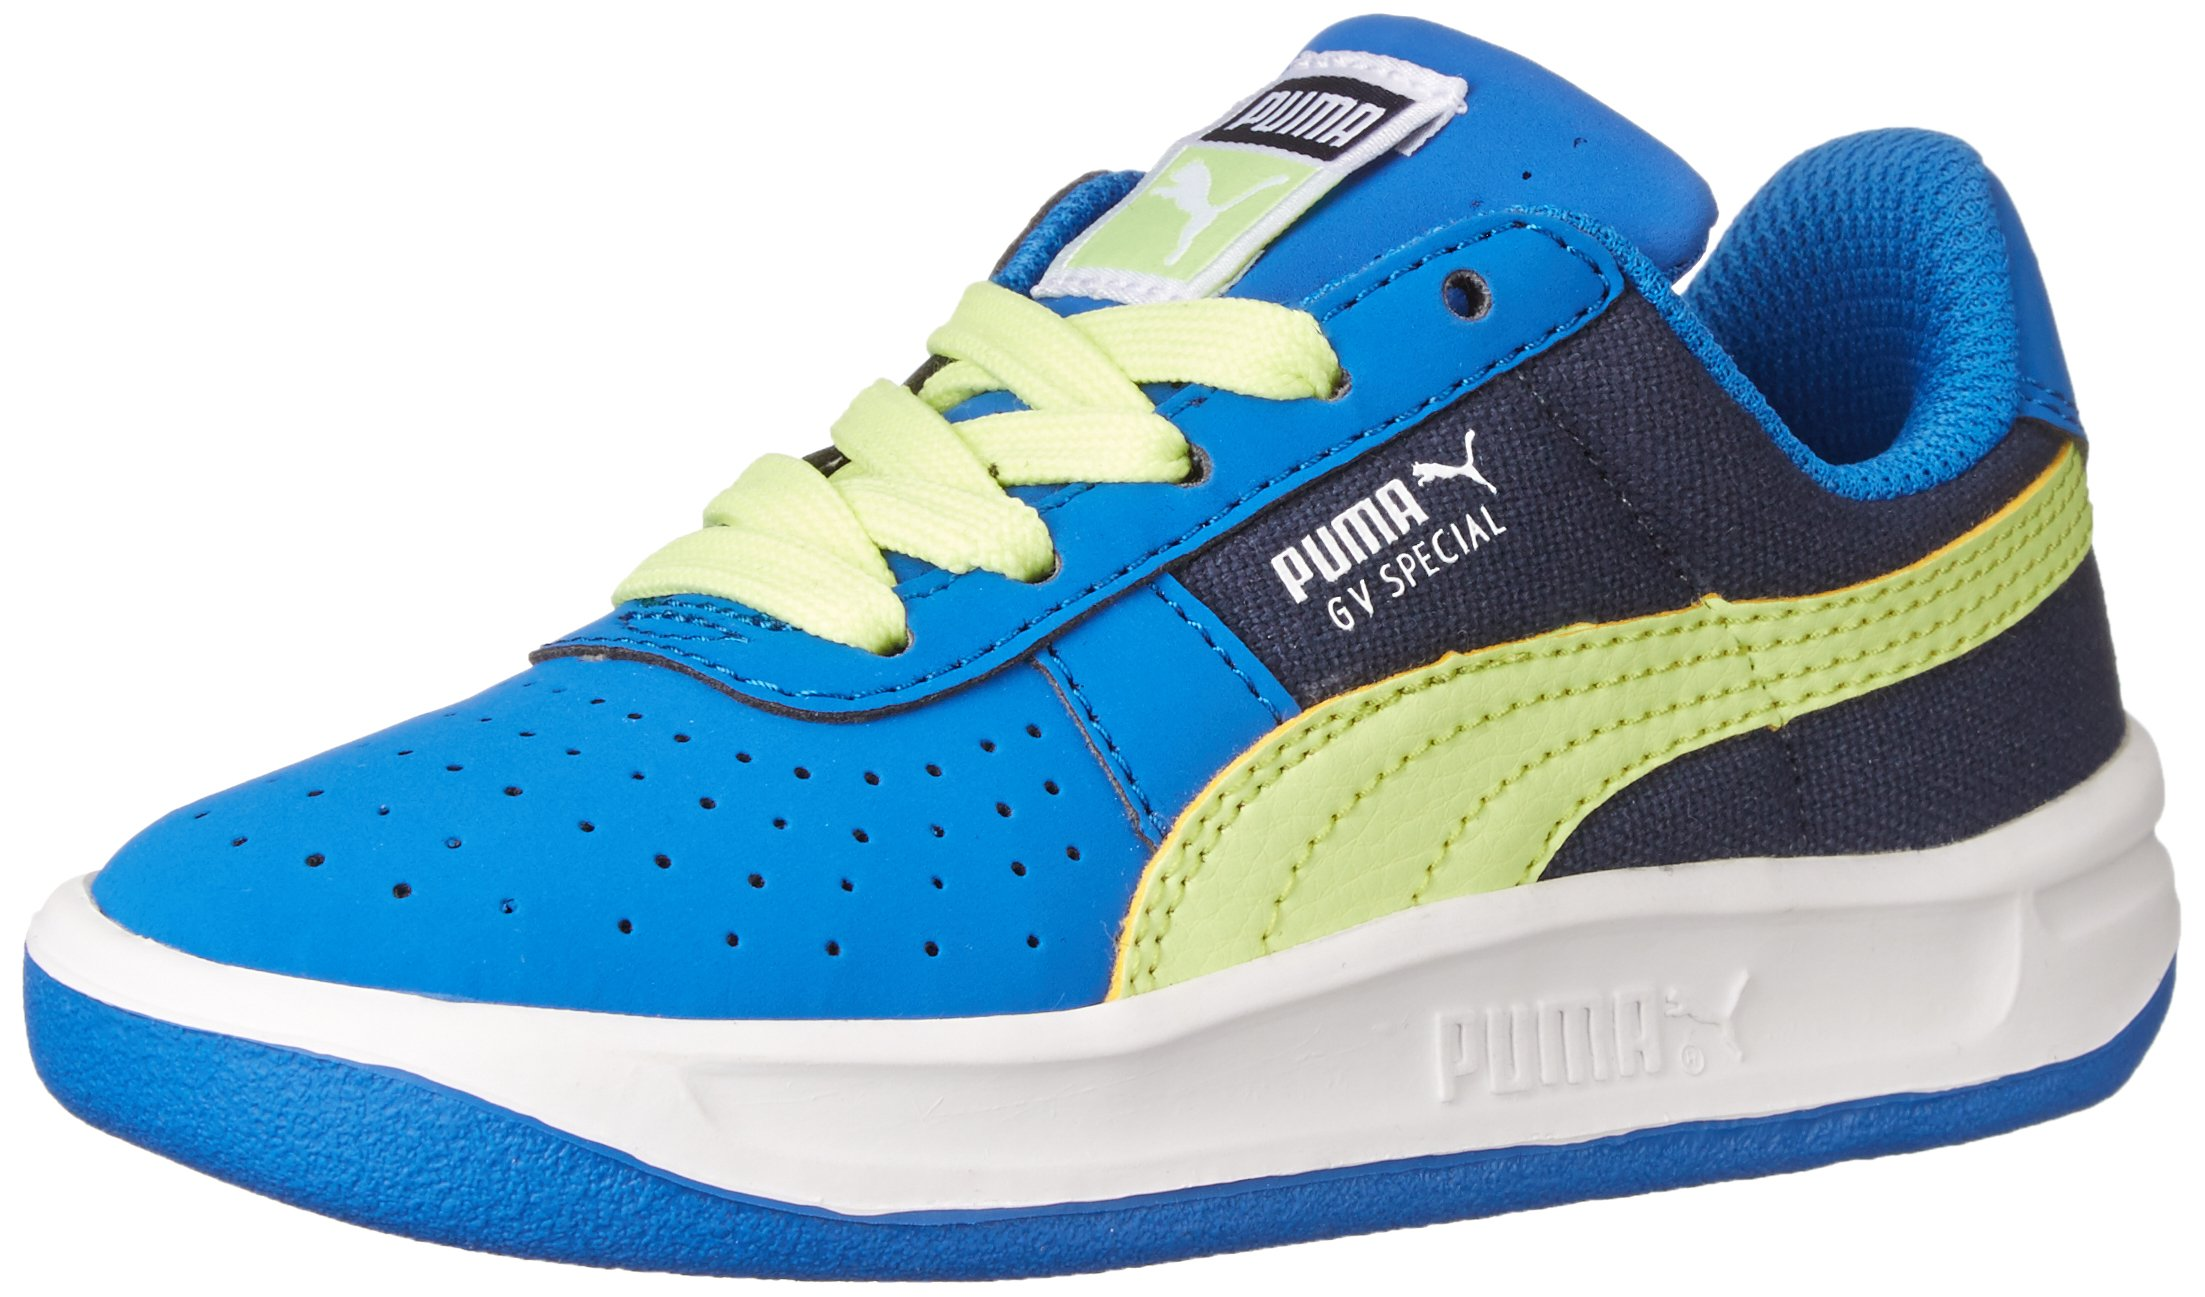 PUMA GV Special Canvas Kids Classic Sneaker (Infant/Toddler/Little Kid/Big Kid), Strong Blue/Peacoat/Sharp Green, 6 M US Toddler